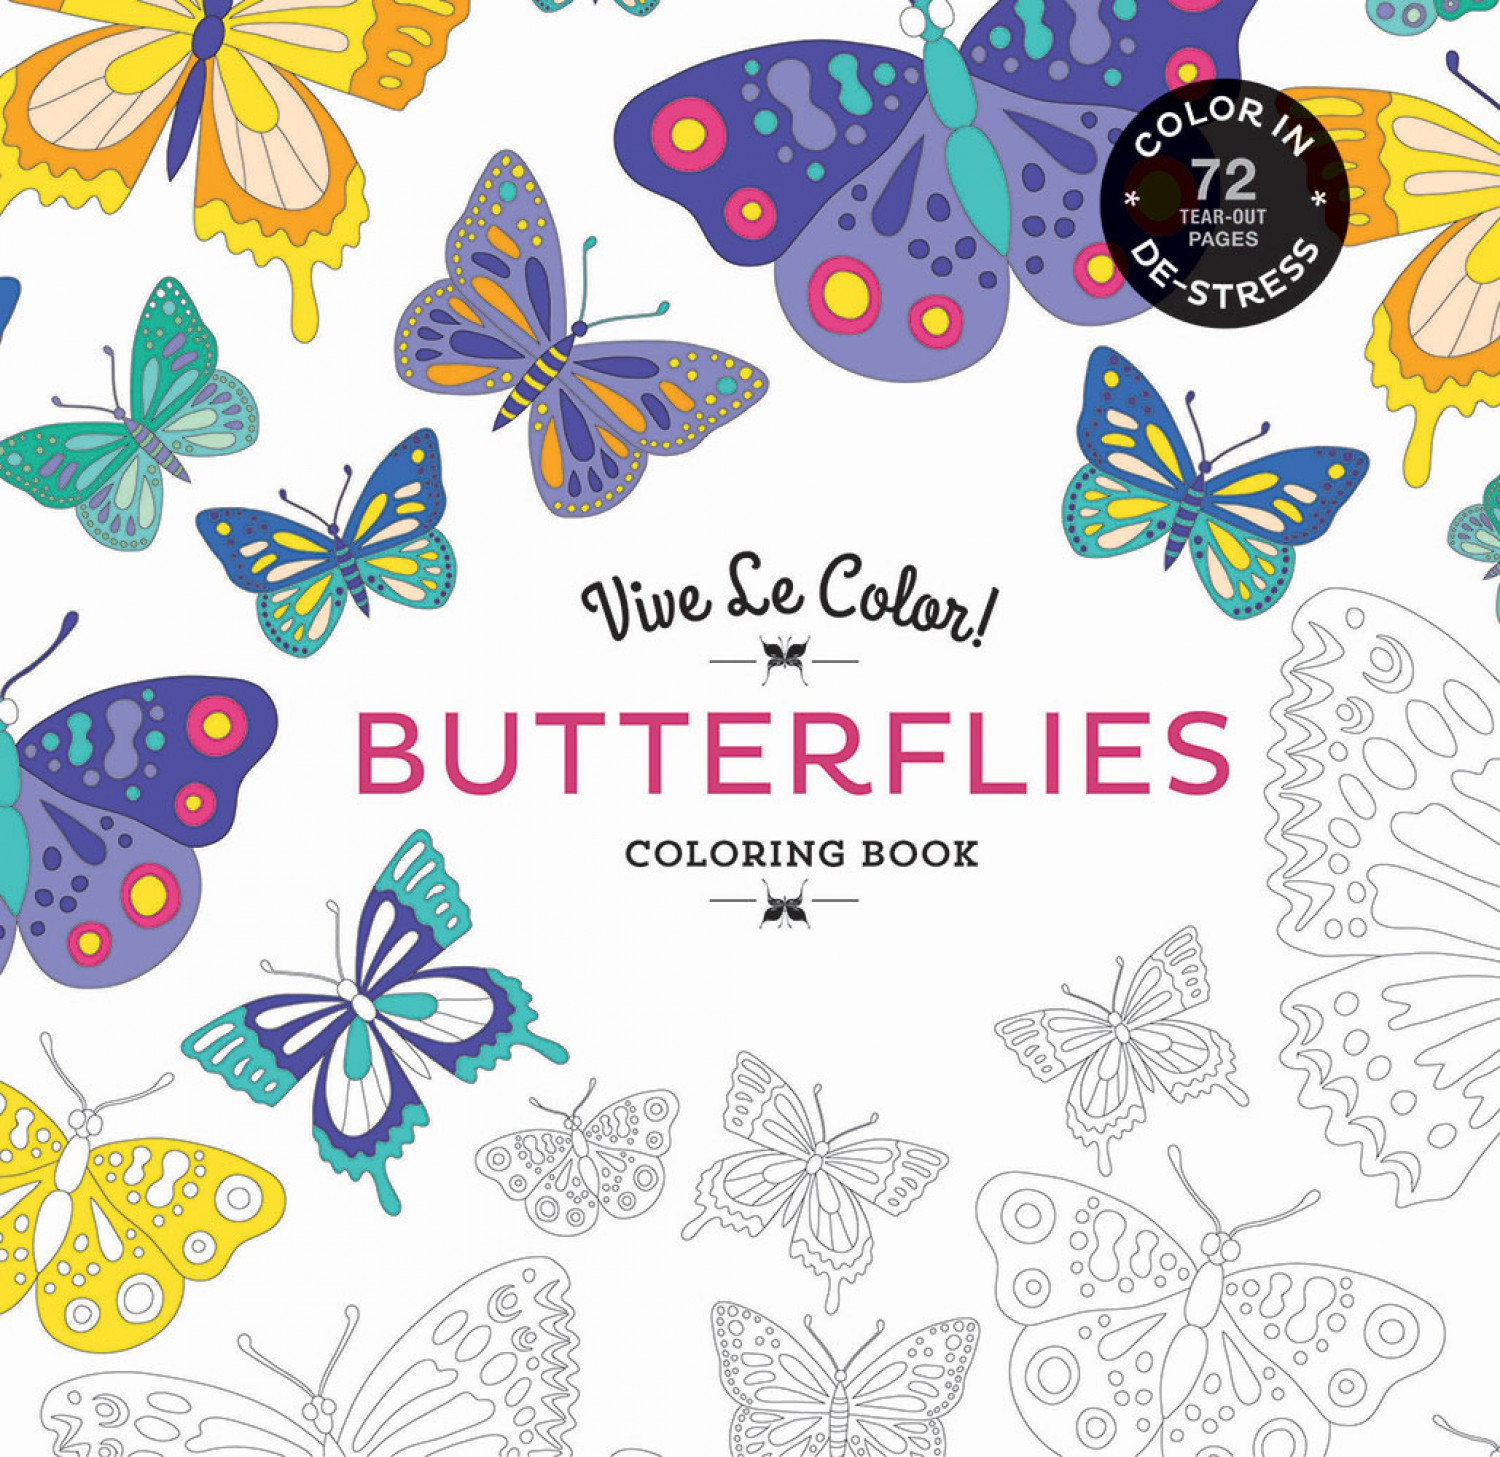 671af3316 BUTTERFLIES - Softcover Coloring Book A980-6 $12.95/each